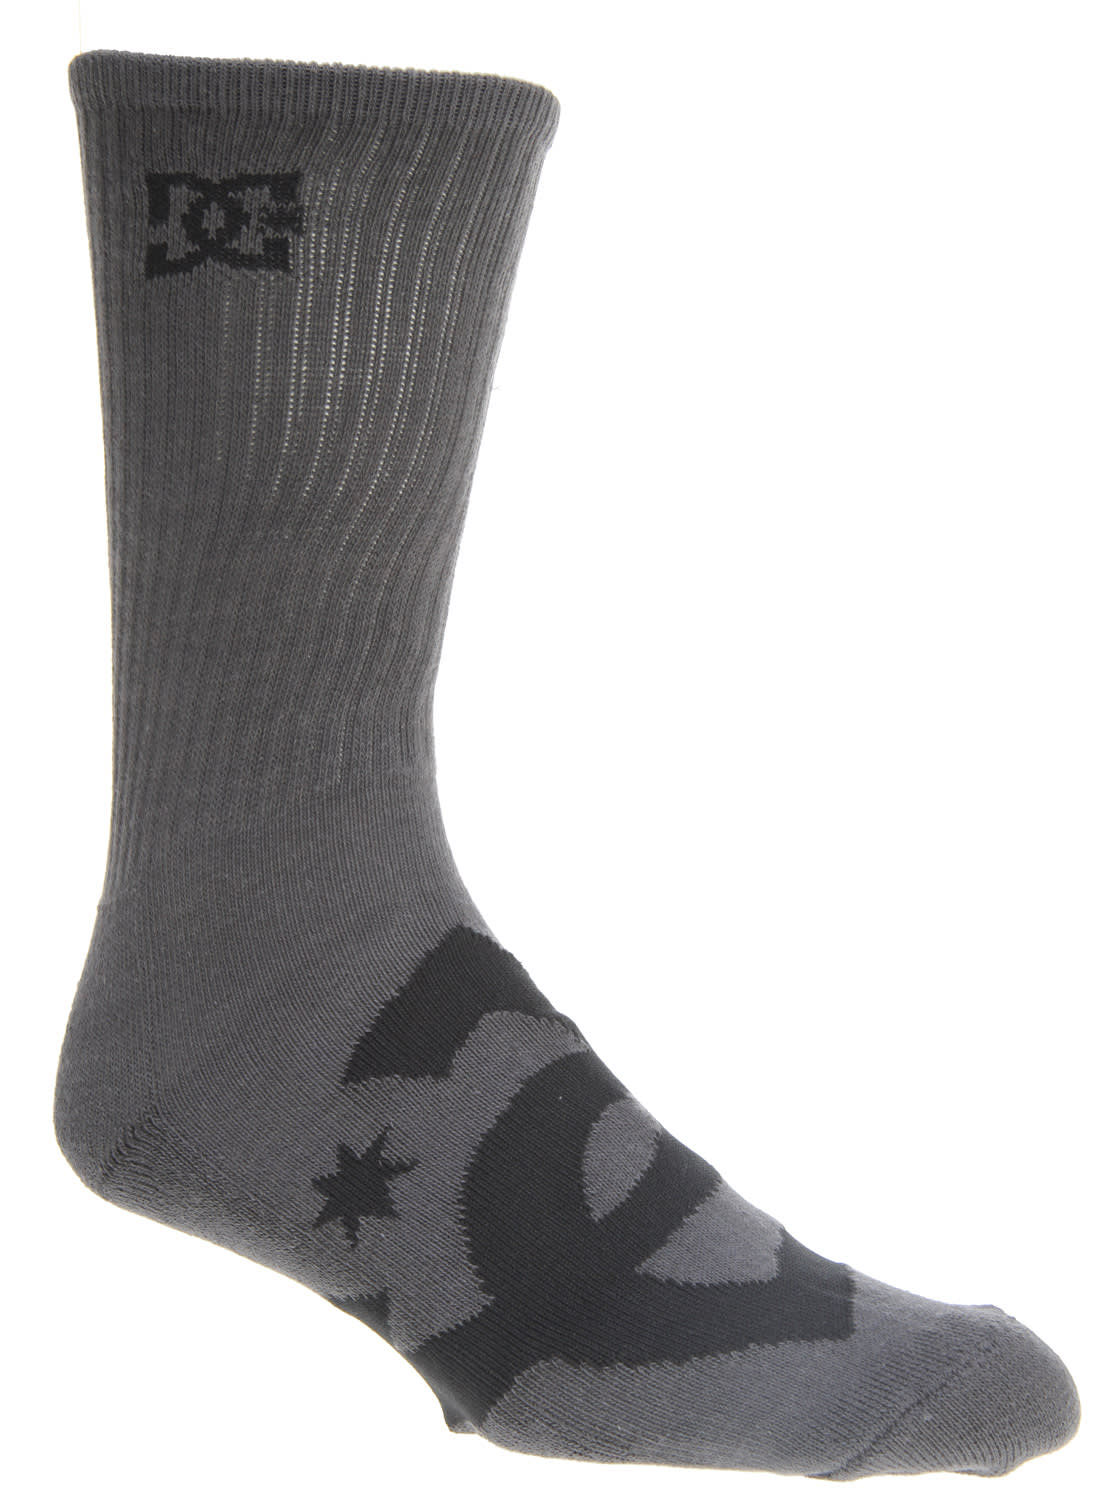 Shop for DC Willis Ii Socks Grey/Black - Men's